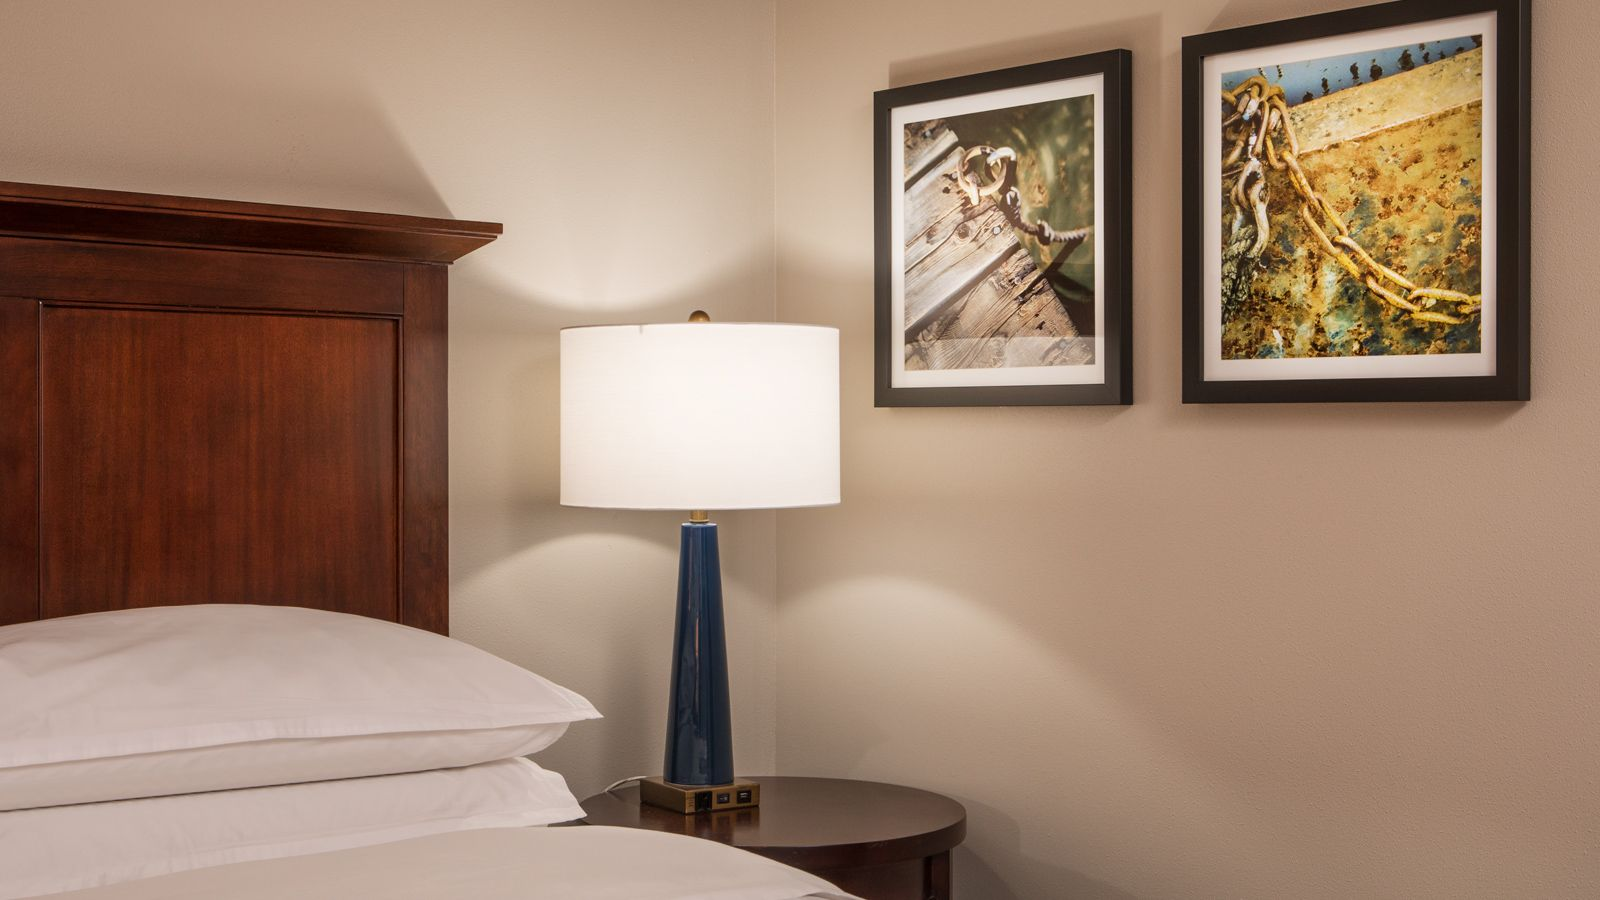 Baltimore Hotel Room – Accessible Room